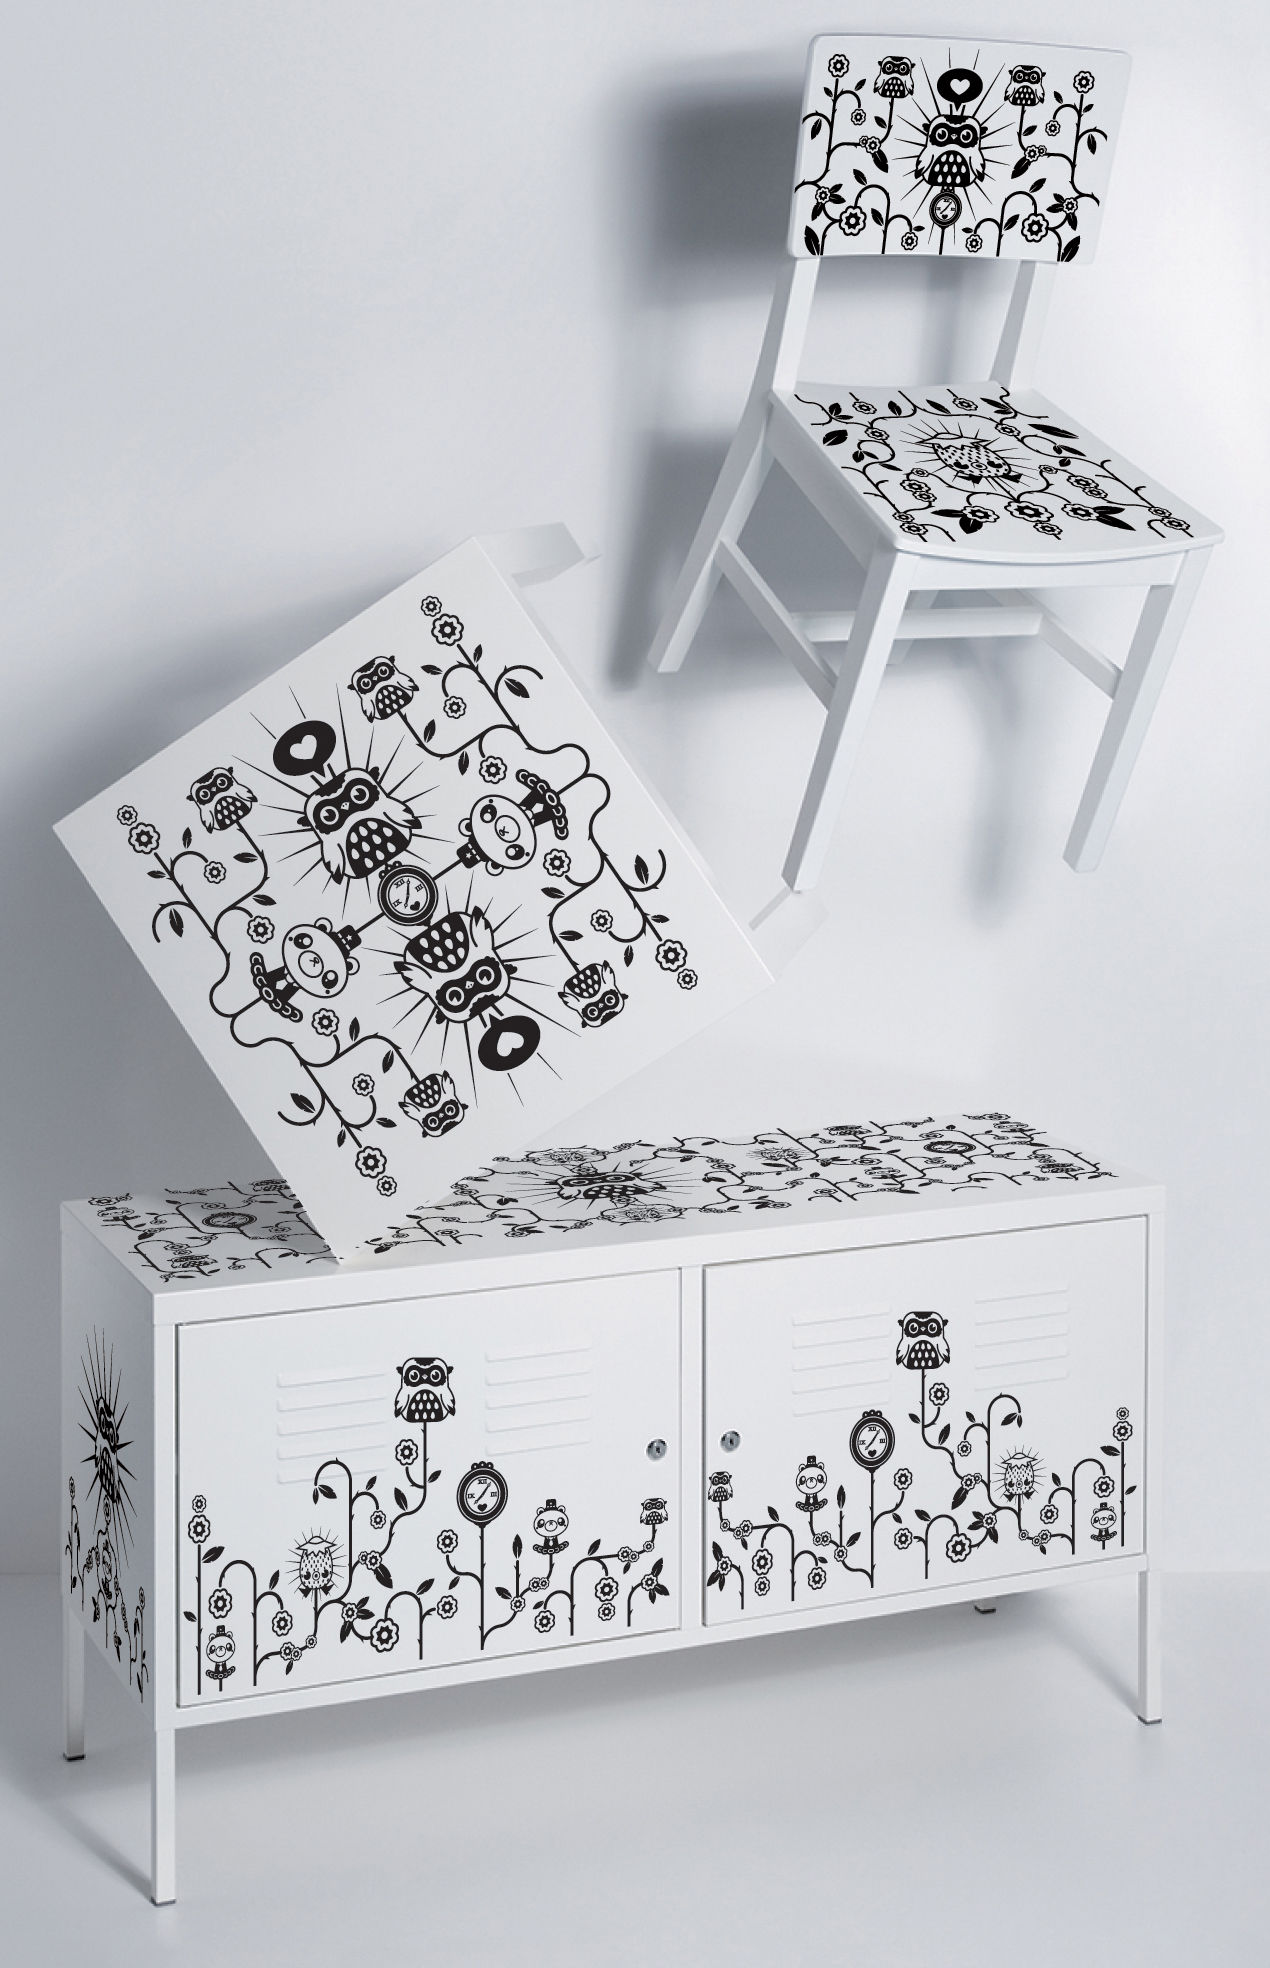 Par tado furniture sticker for the chest of drawers by domestic made in design uk - Stickers mobili ...